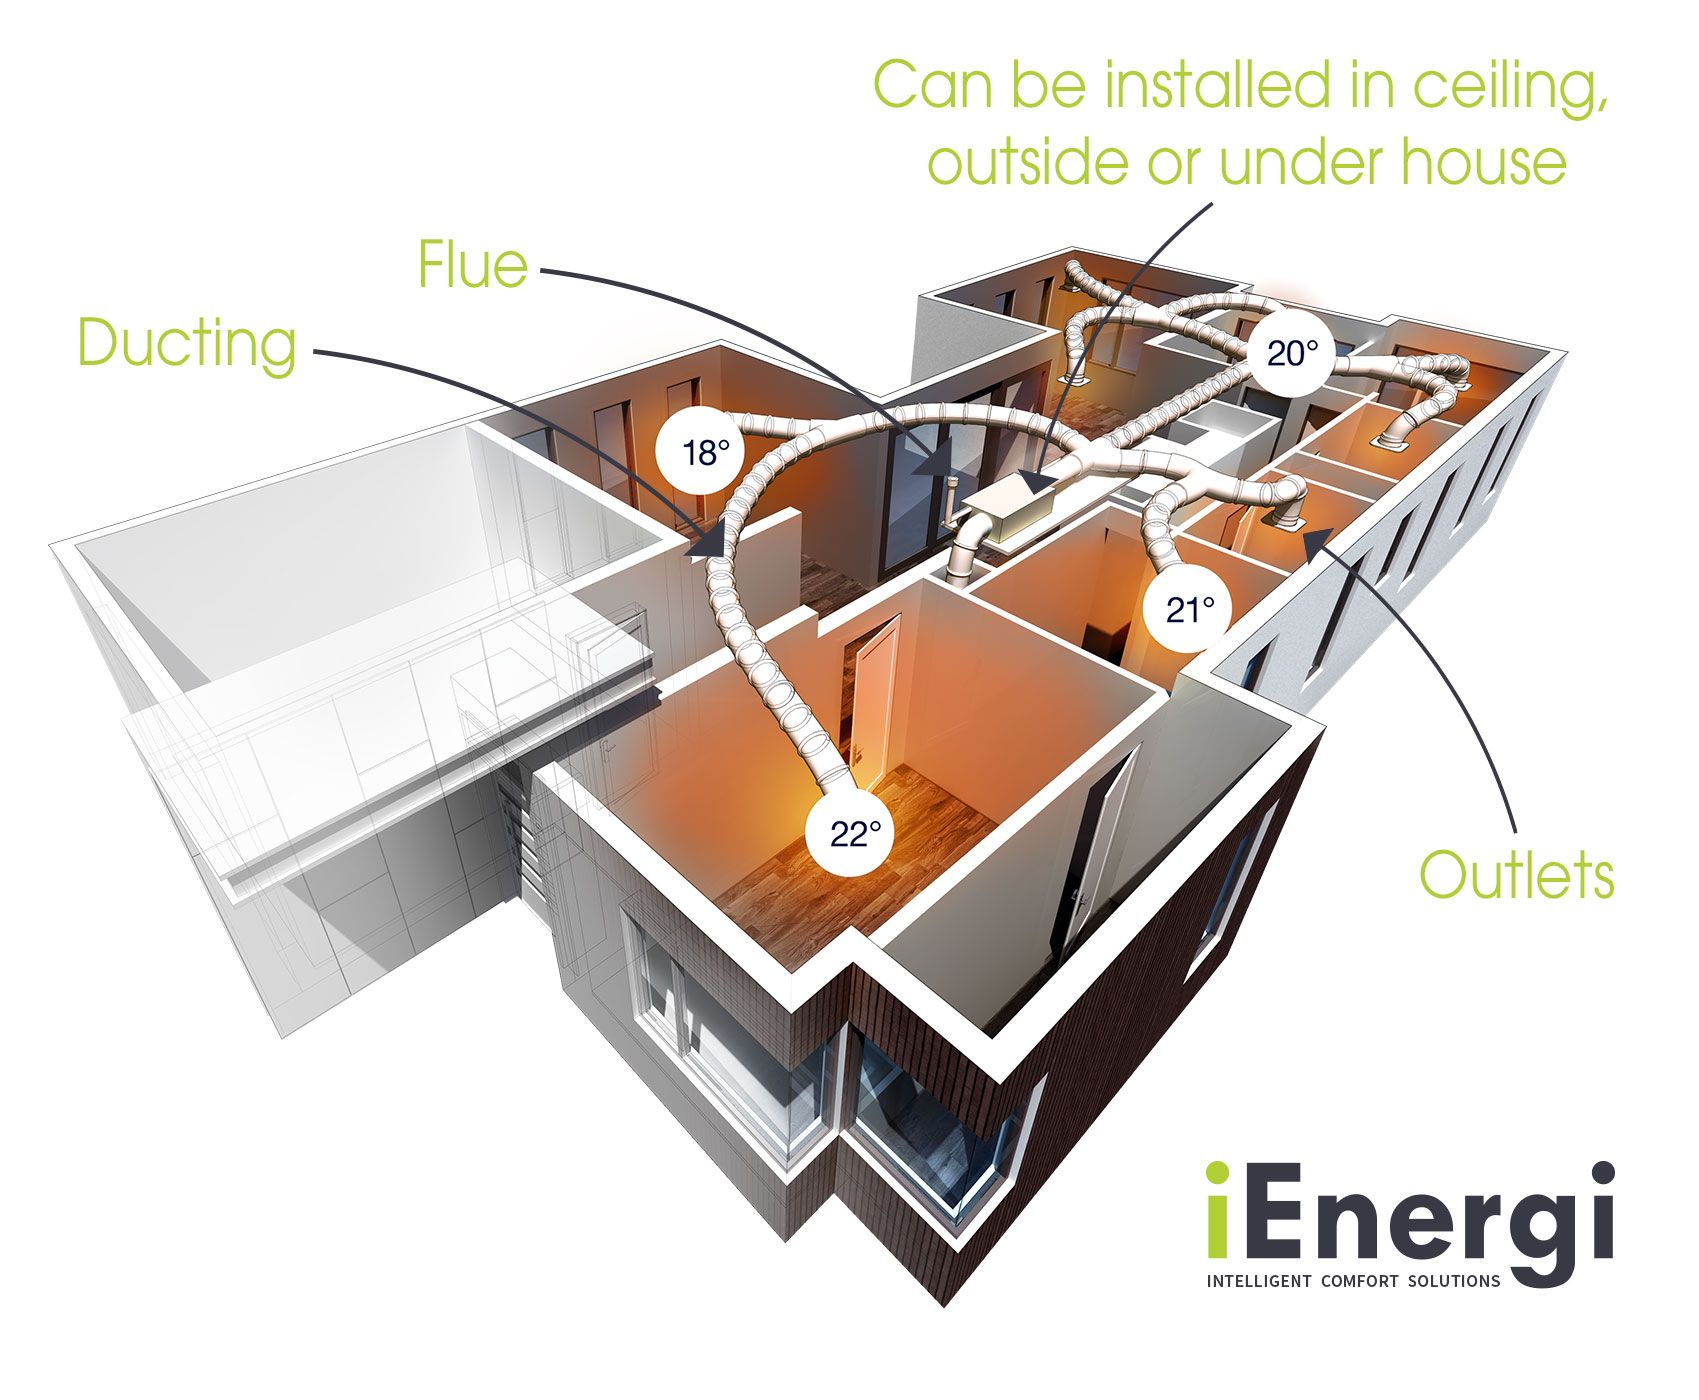 ienergihomeheating Heating systems, Ducted heating